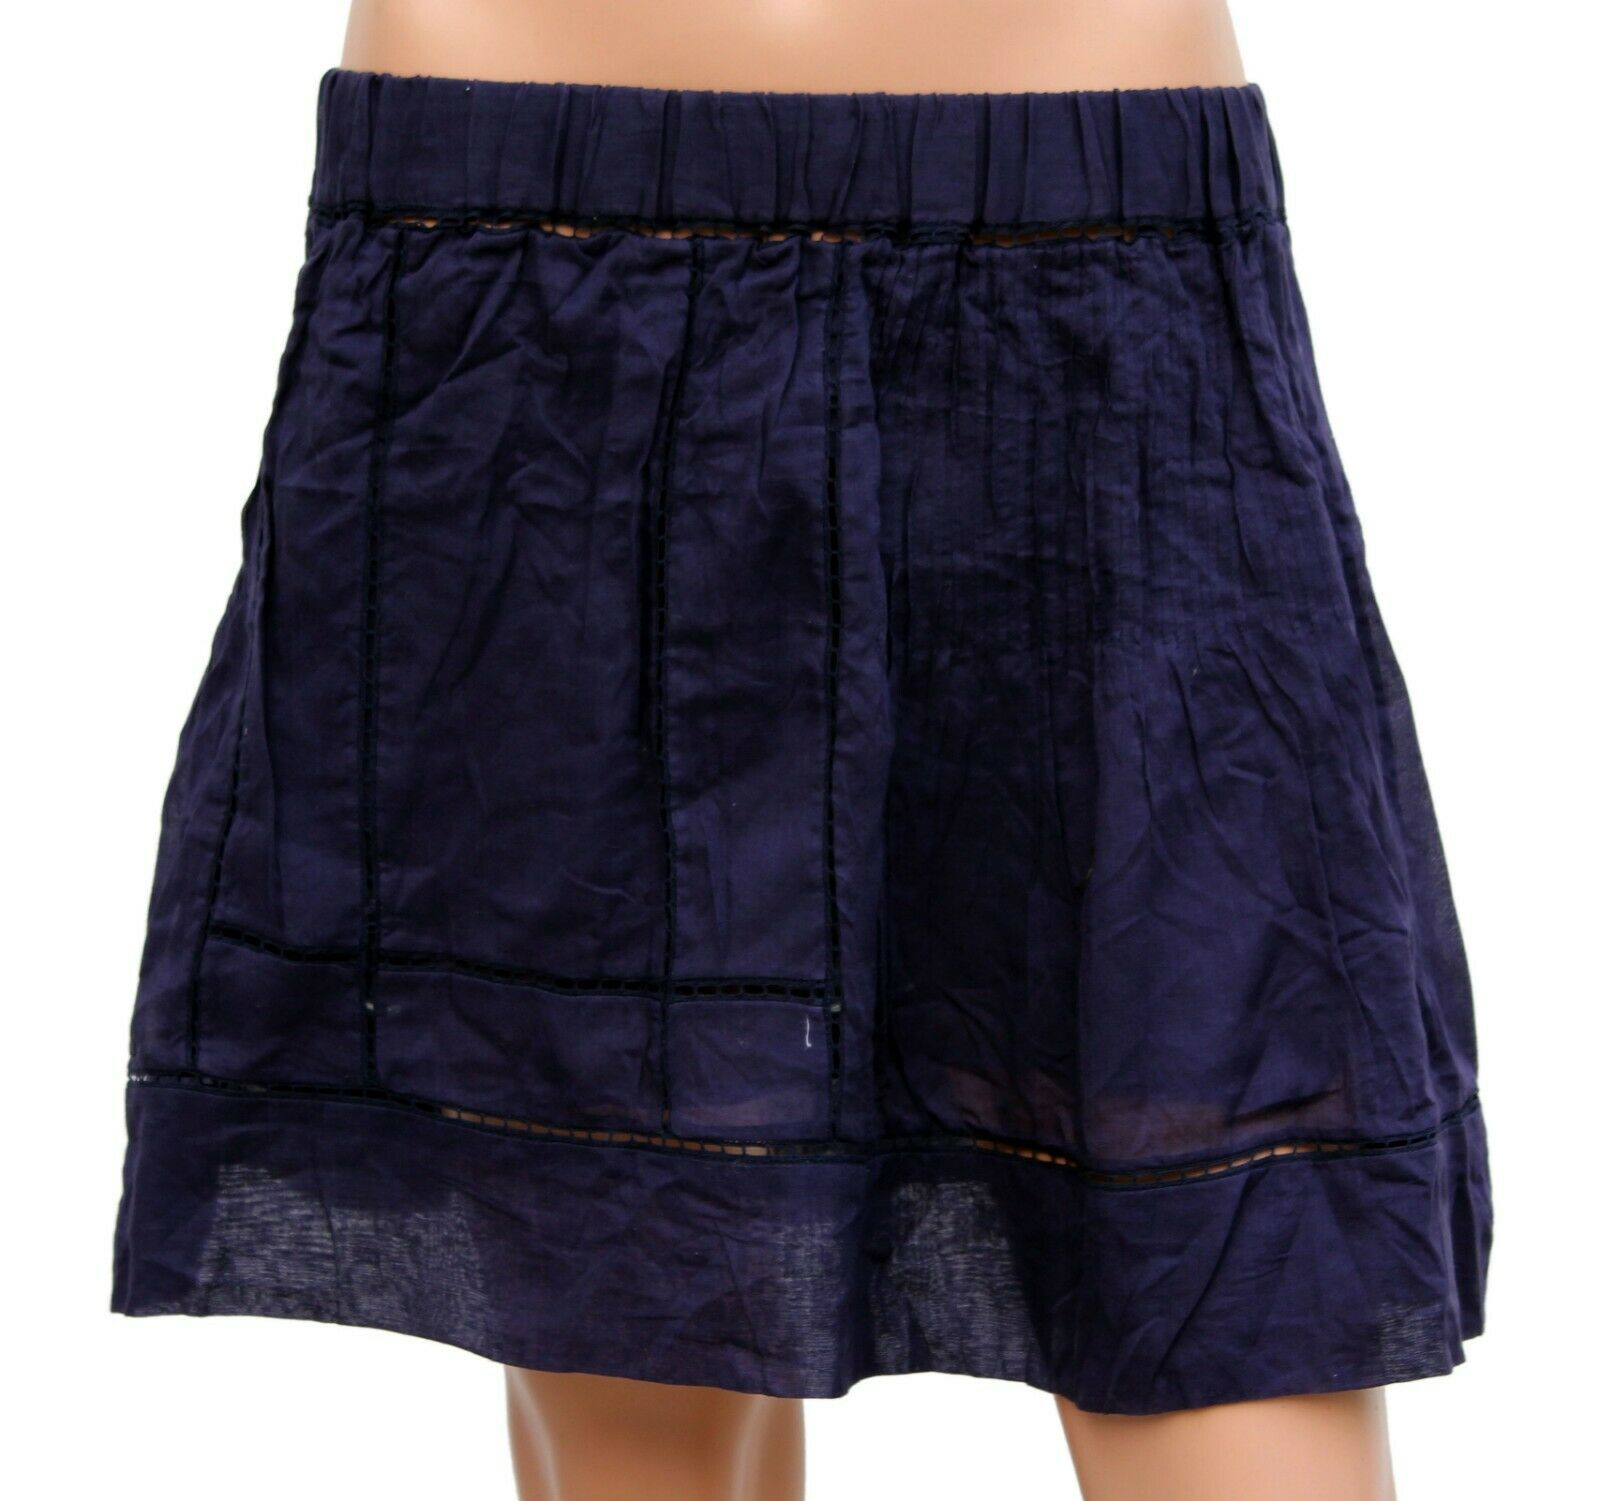 Isabel Marant Etoile Women's Casual Cotton Embroidered Short Skirts L 3 38